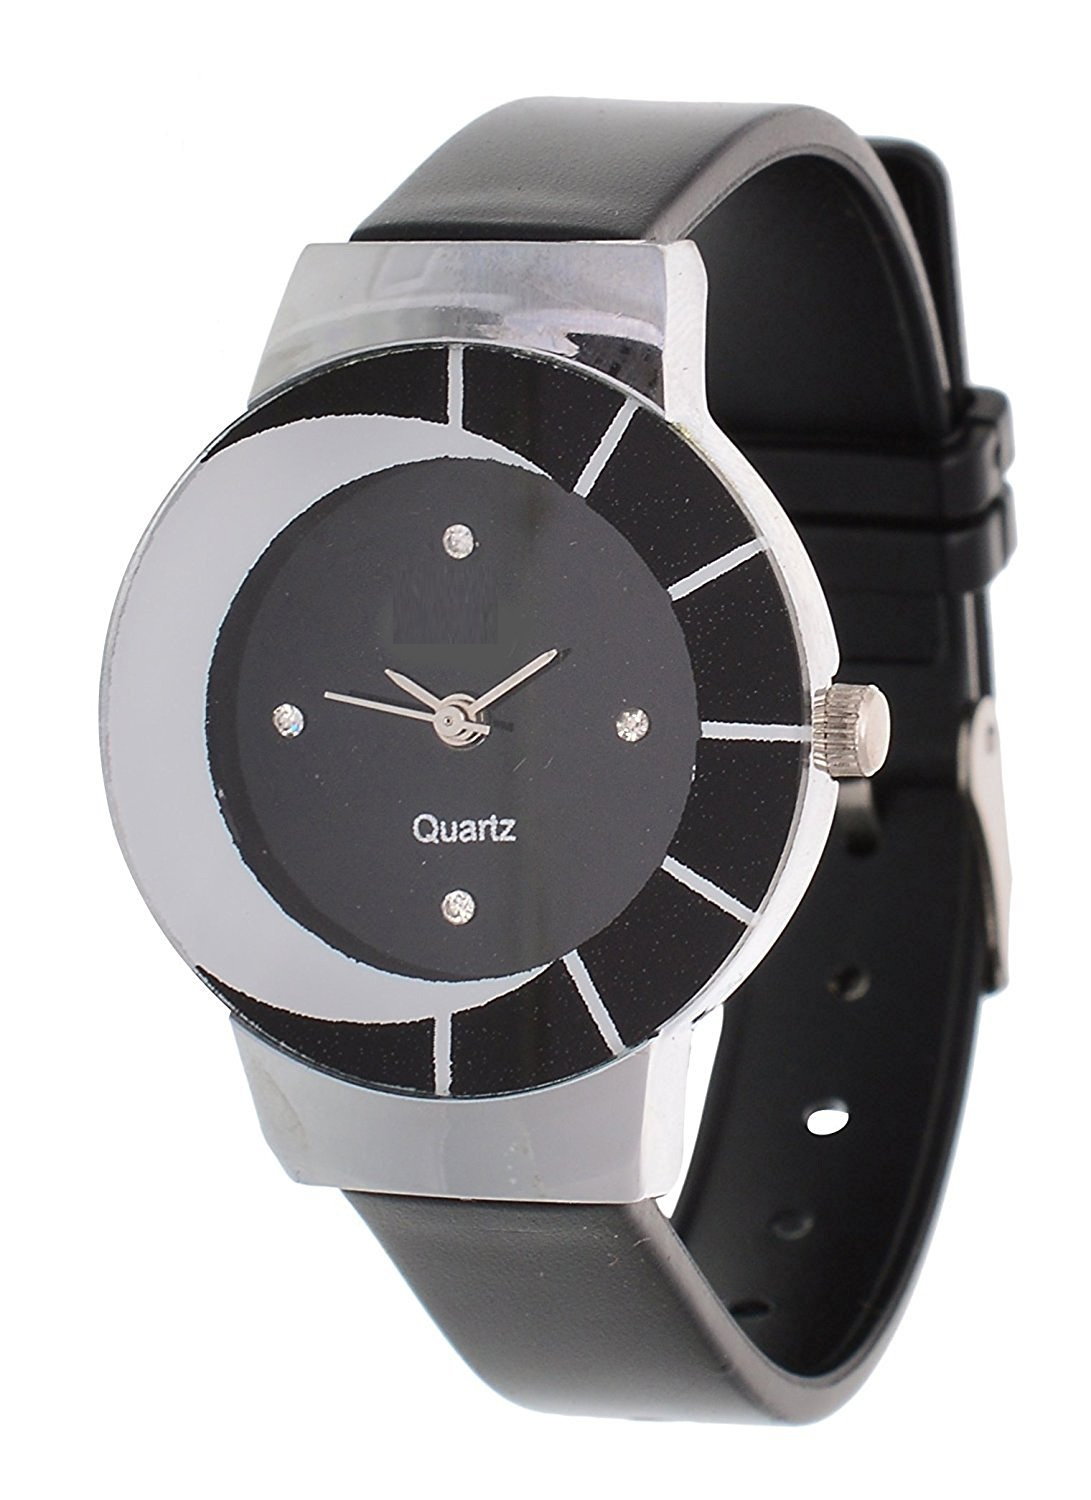 black designer glory watch for woman  by  miss